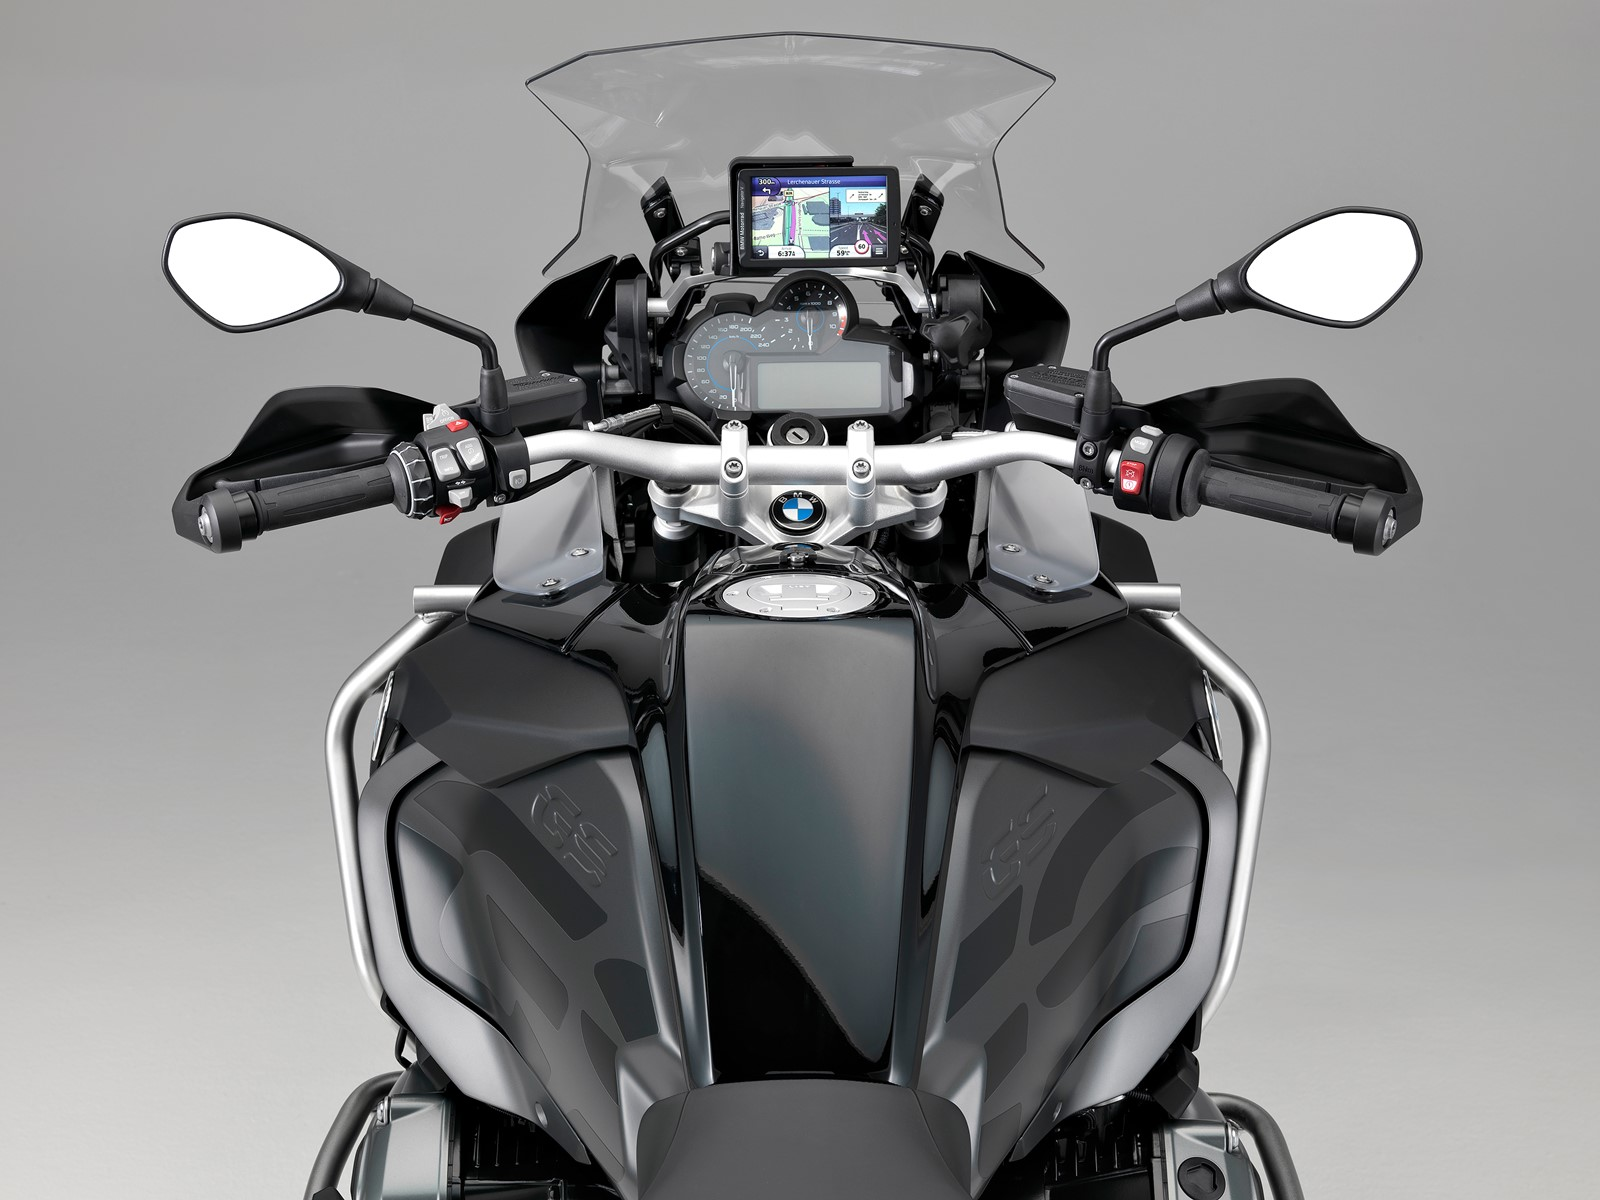 2017 BMW R1200 GS cockpit